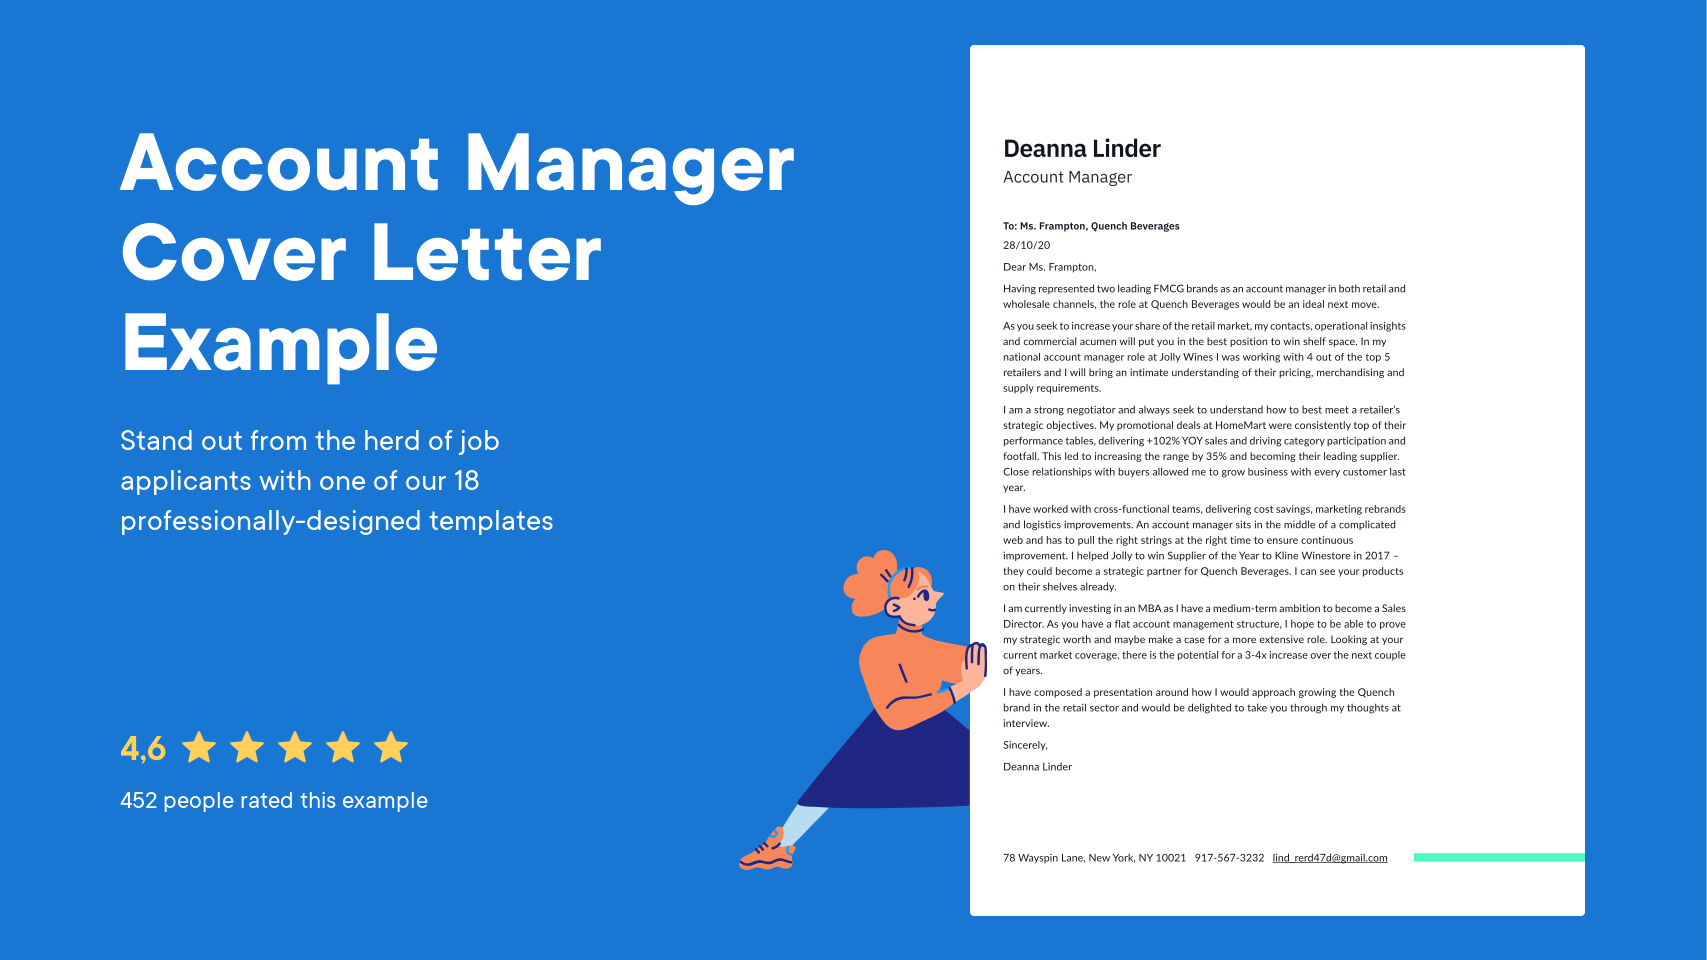 Account Manager Cover Letter Examples Expert Tips Free